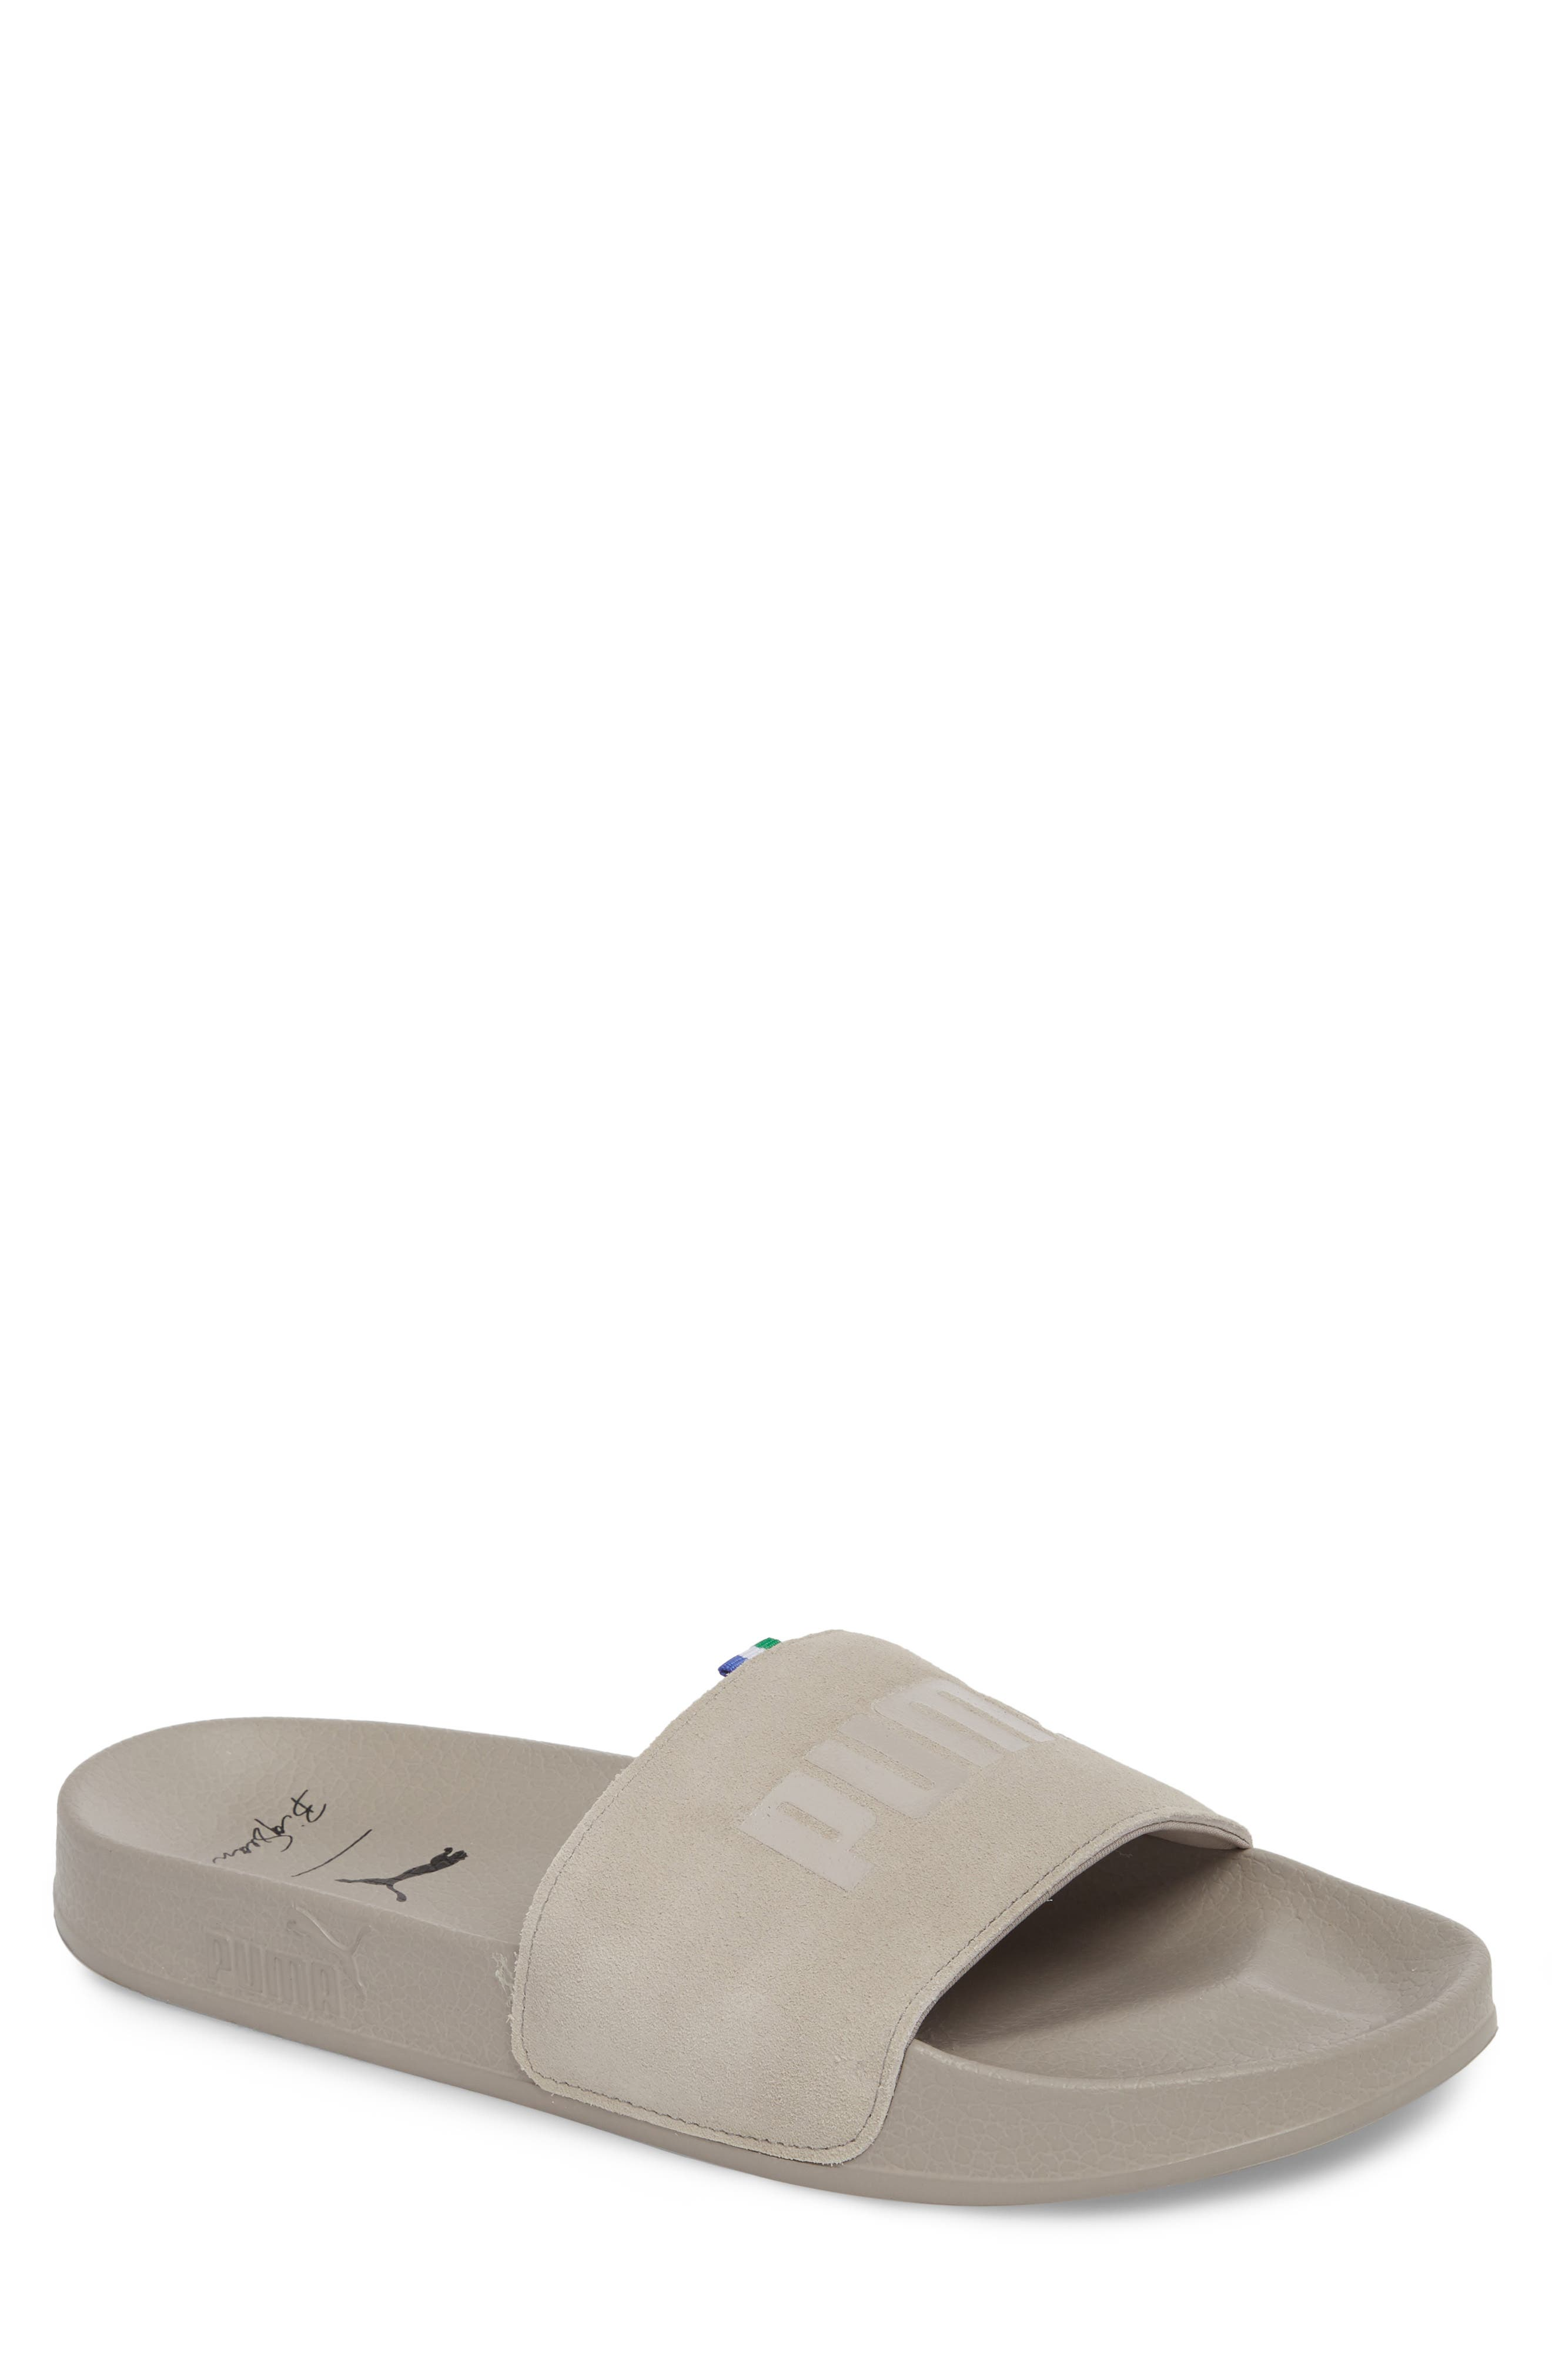 x Big Sean Leadcat Slide Sandal,                             Main thumbnail 1, color,                             Whisper White Leather/ Suede